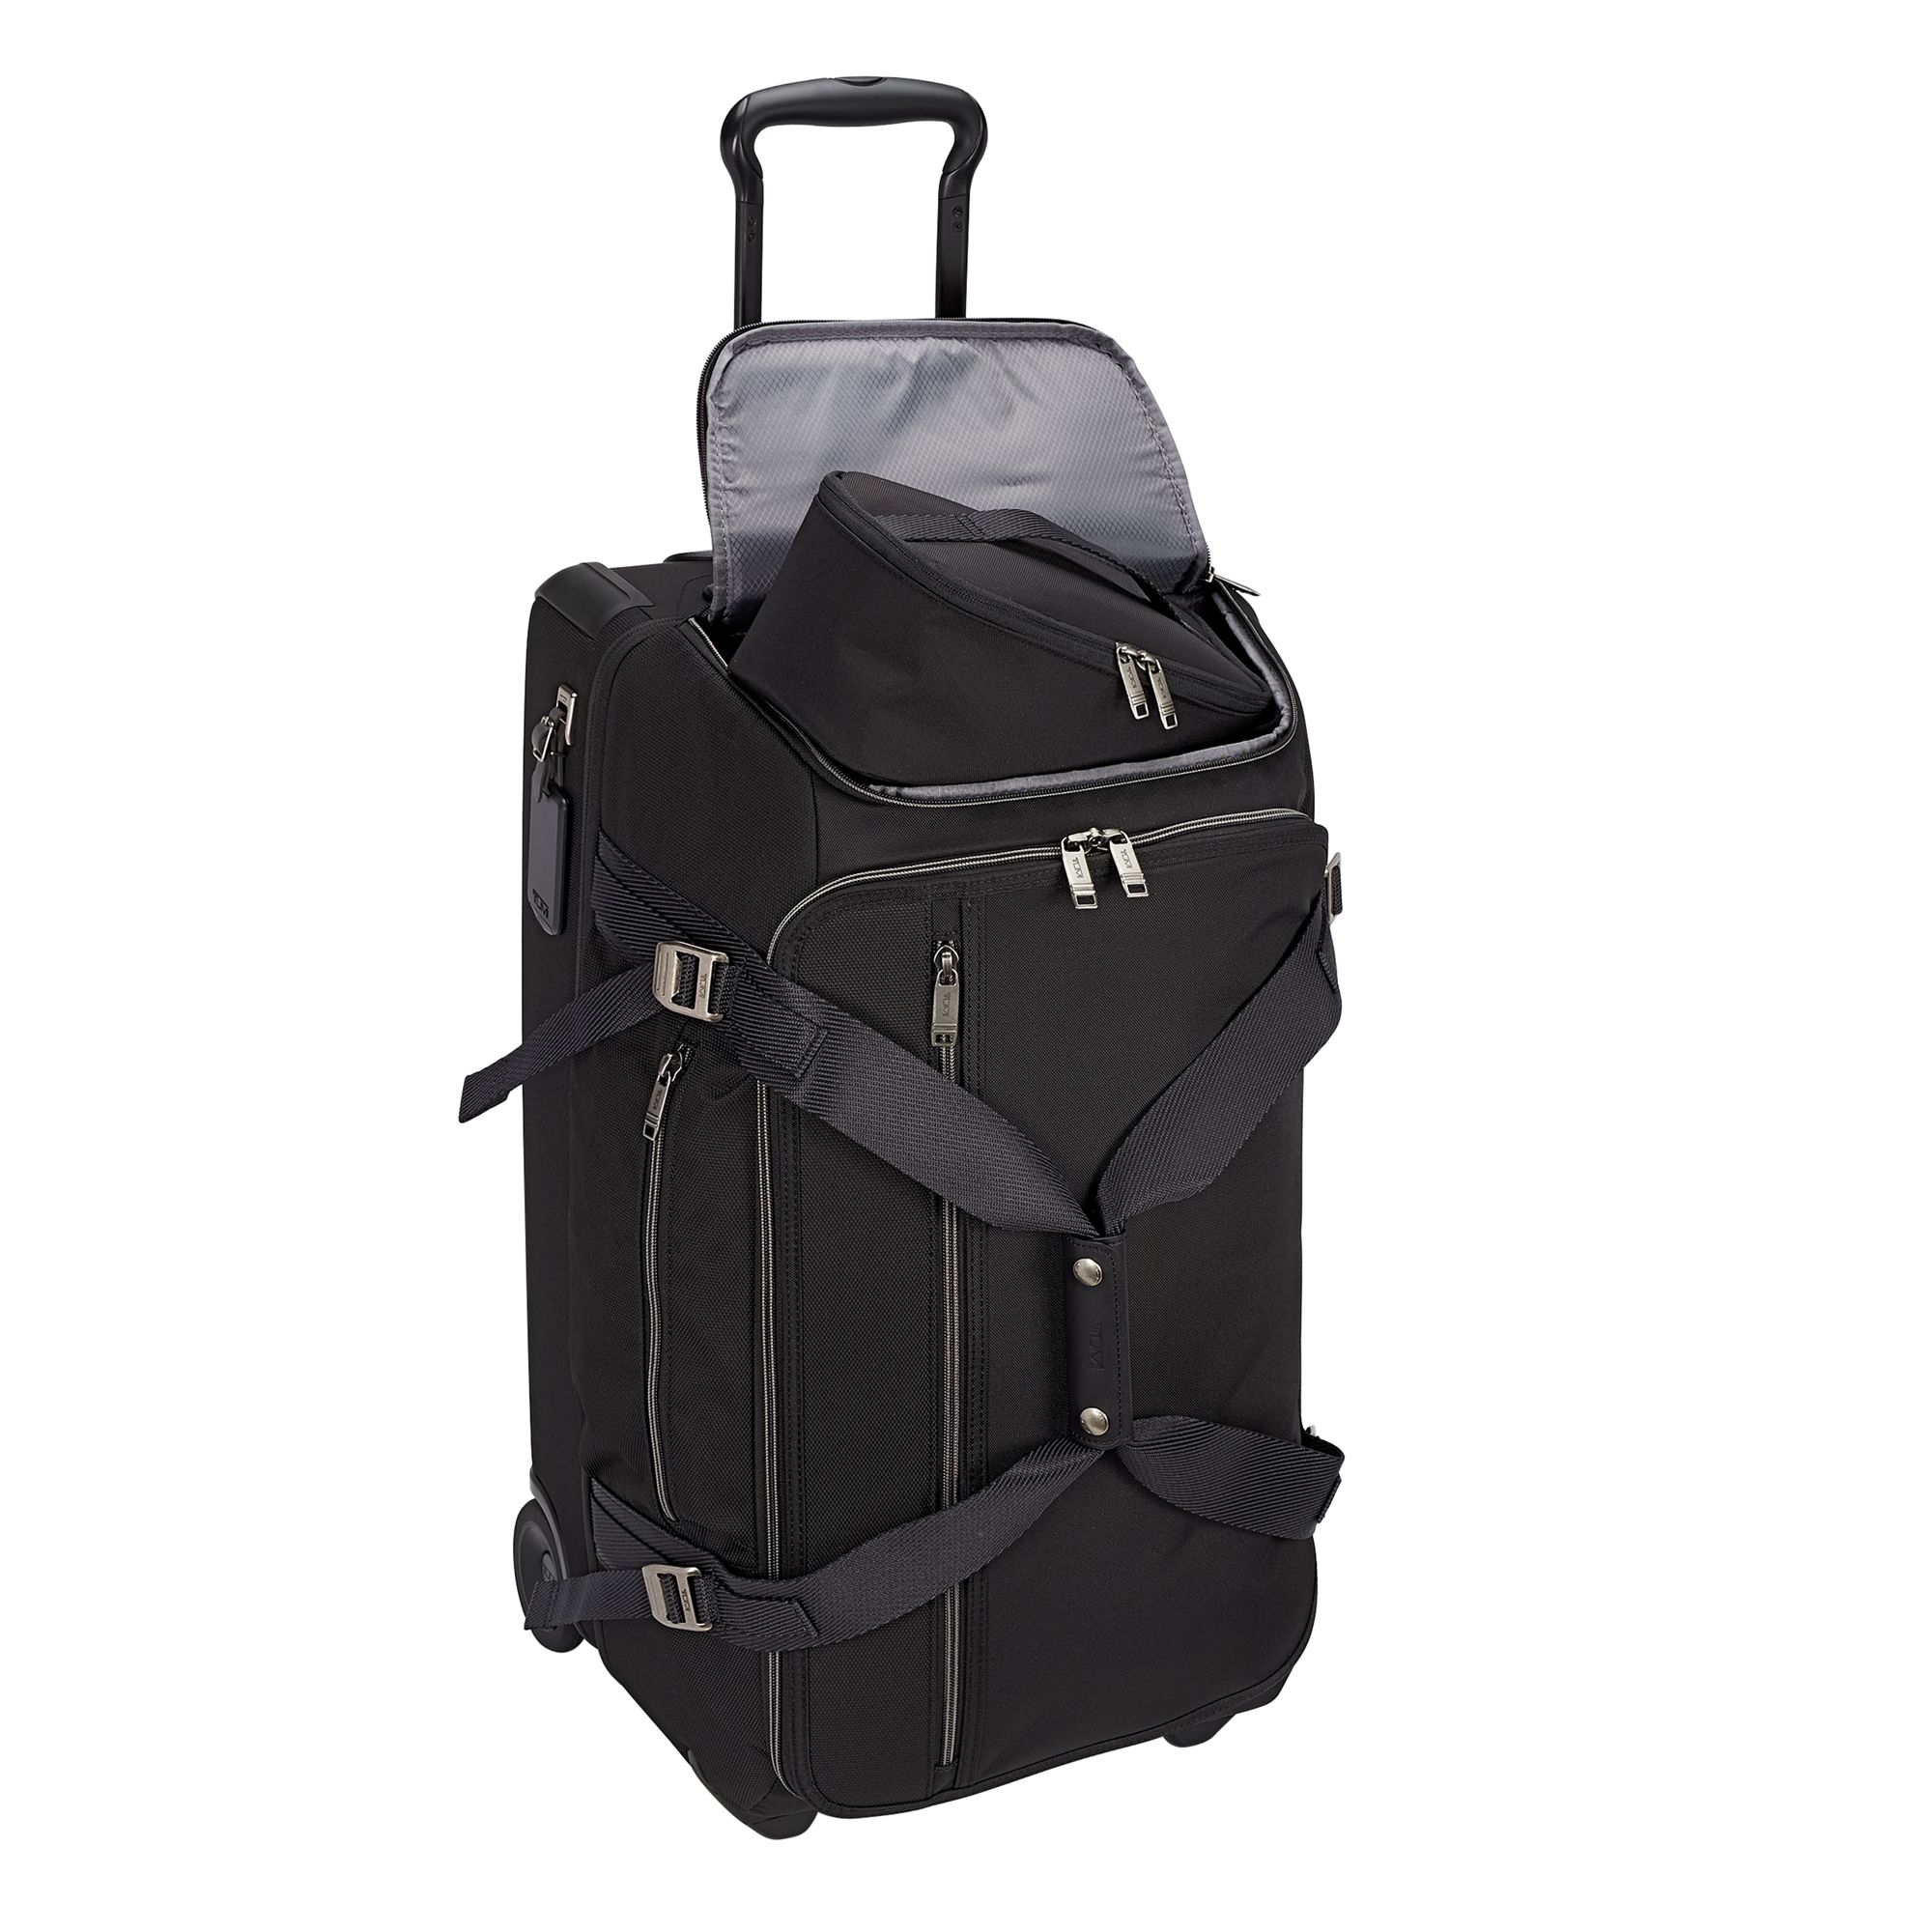 27af7cce0 Merge Wheeled Duffel Packing Case By Tumi